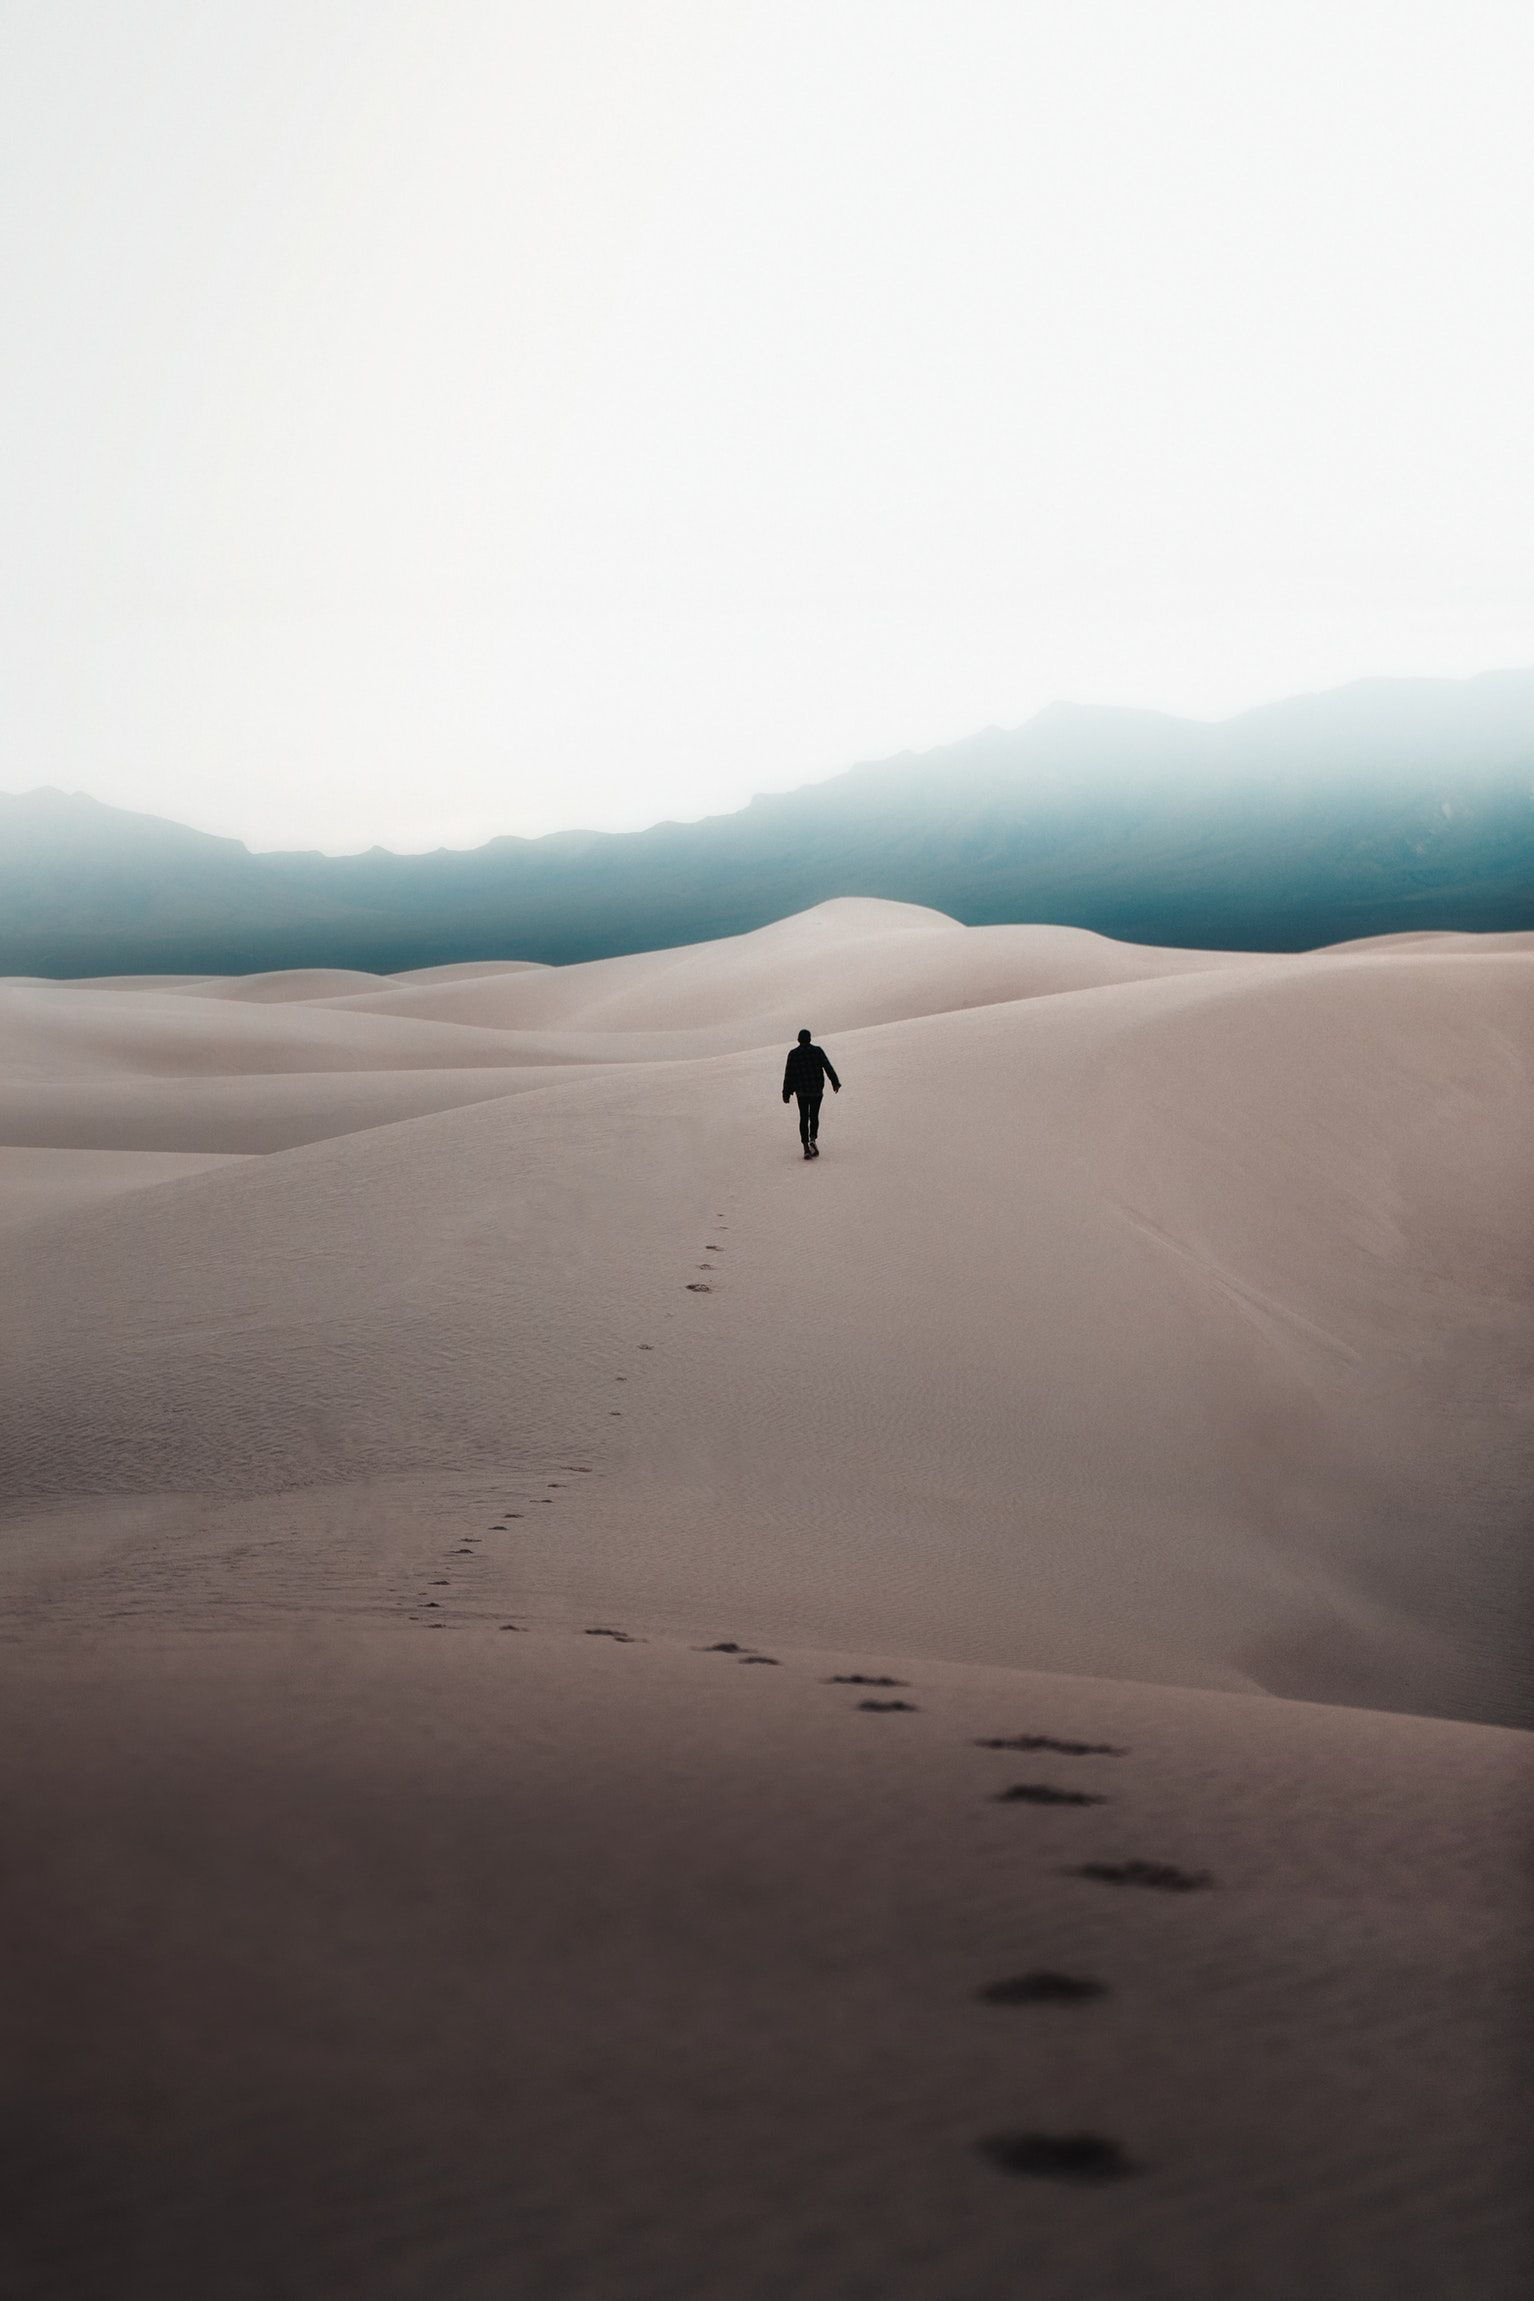 Sand Dune Mountain White Sand Dune And Explore Hd Photo By Logan Armstrong Loganstrongarms On Unsplash Desert Photography Desert Pictures Dune